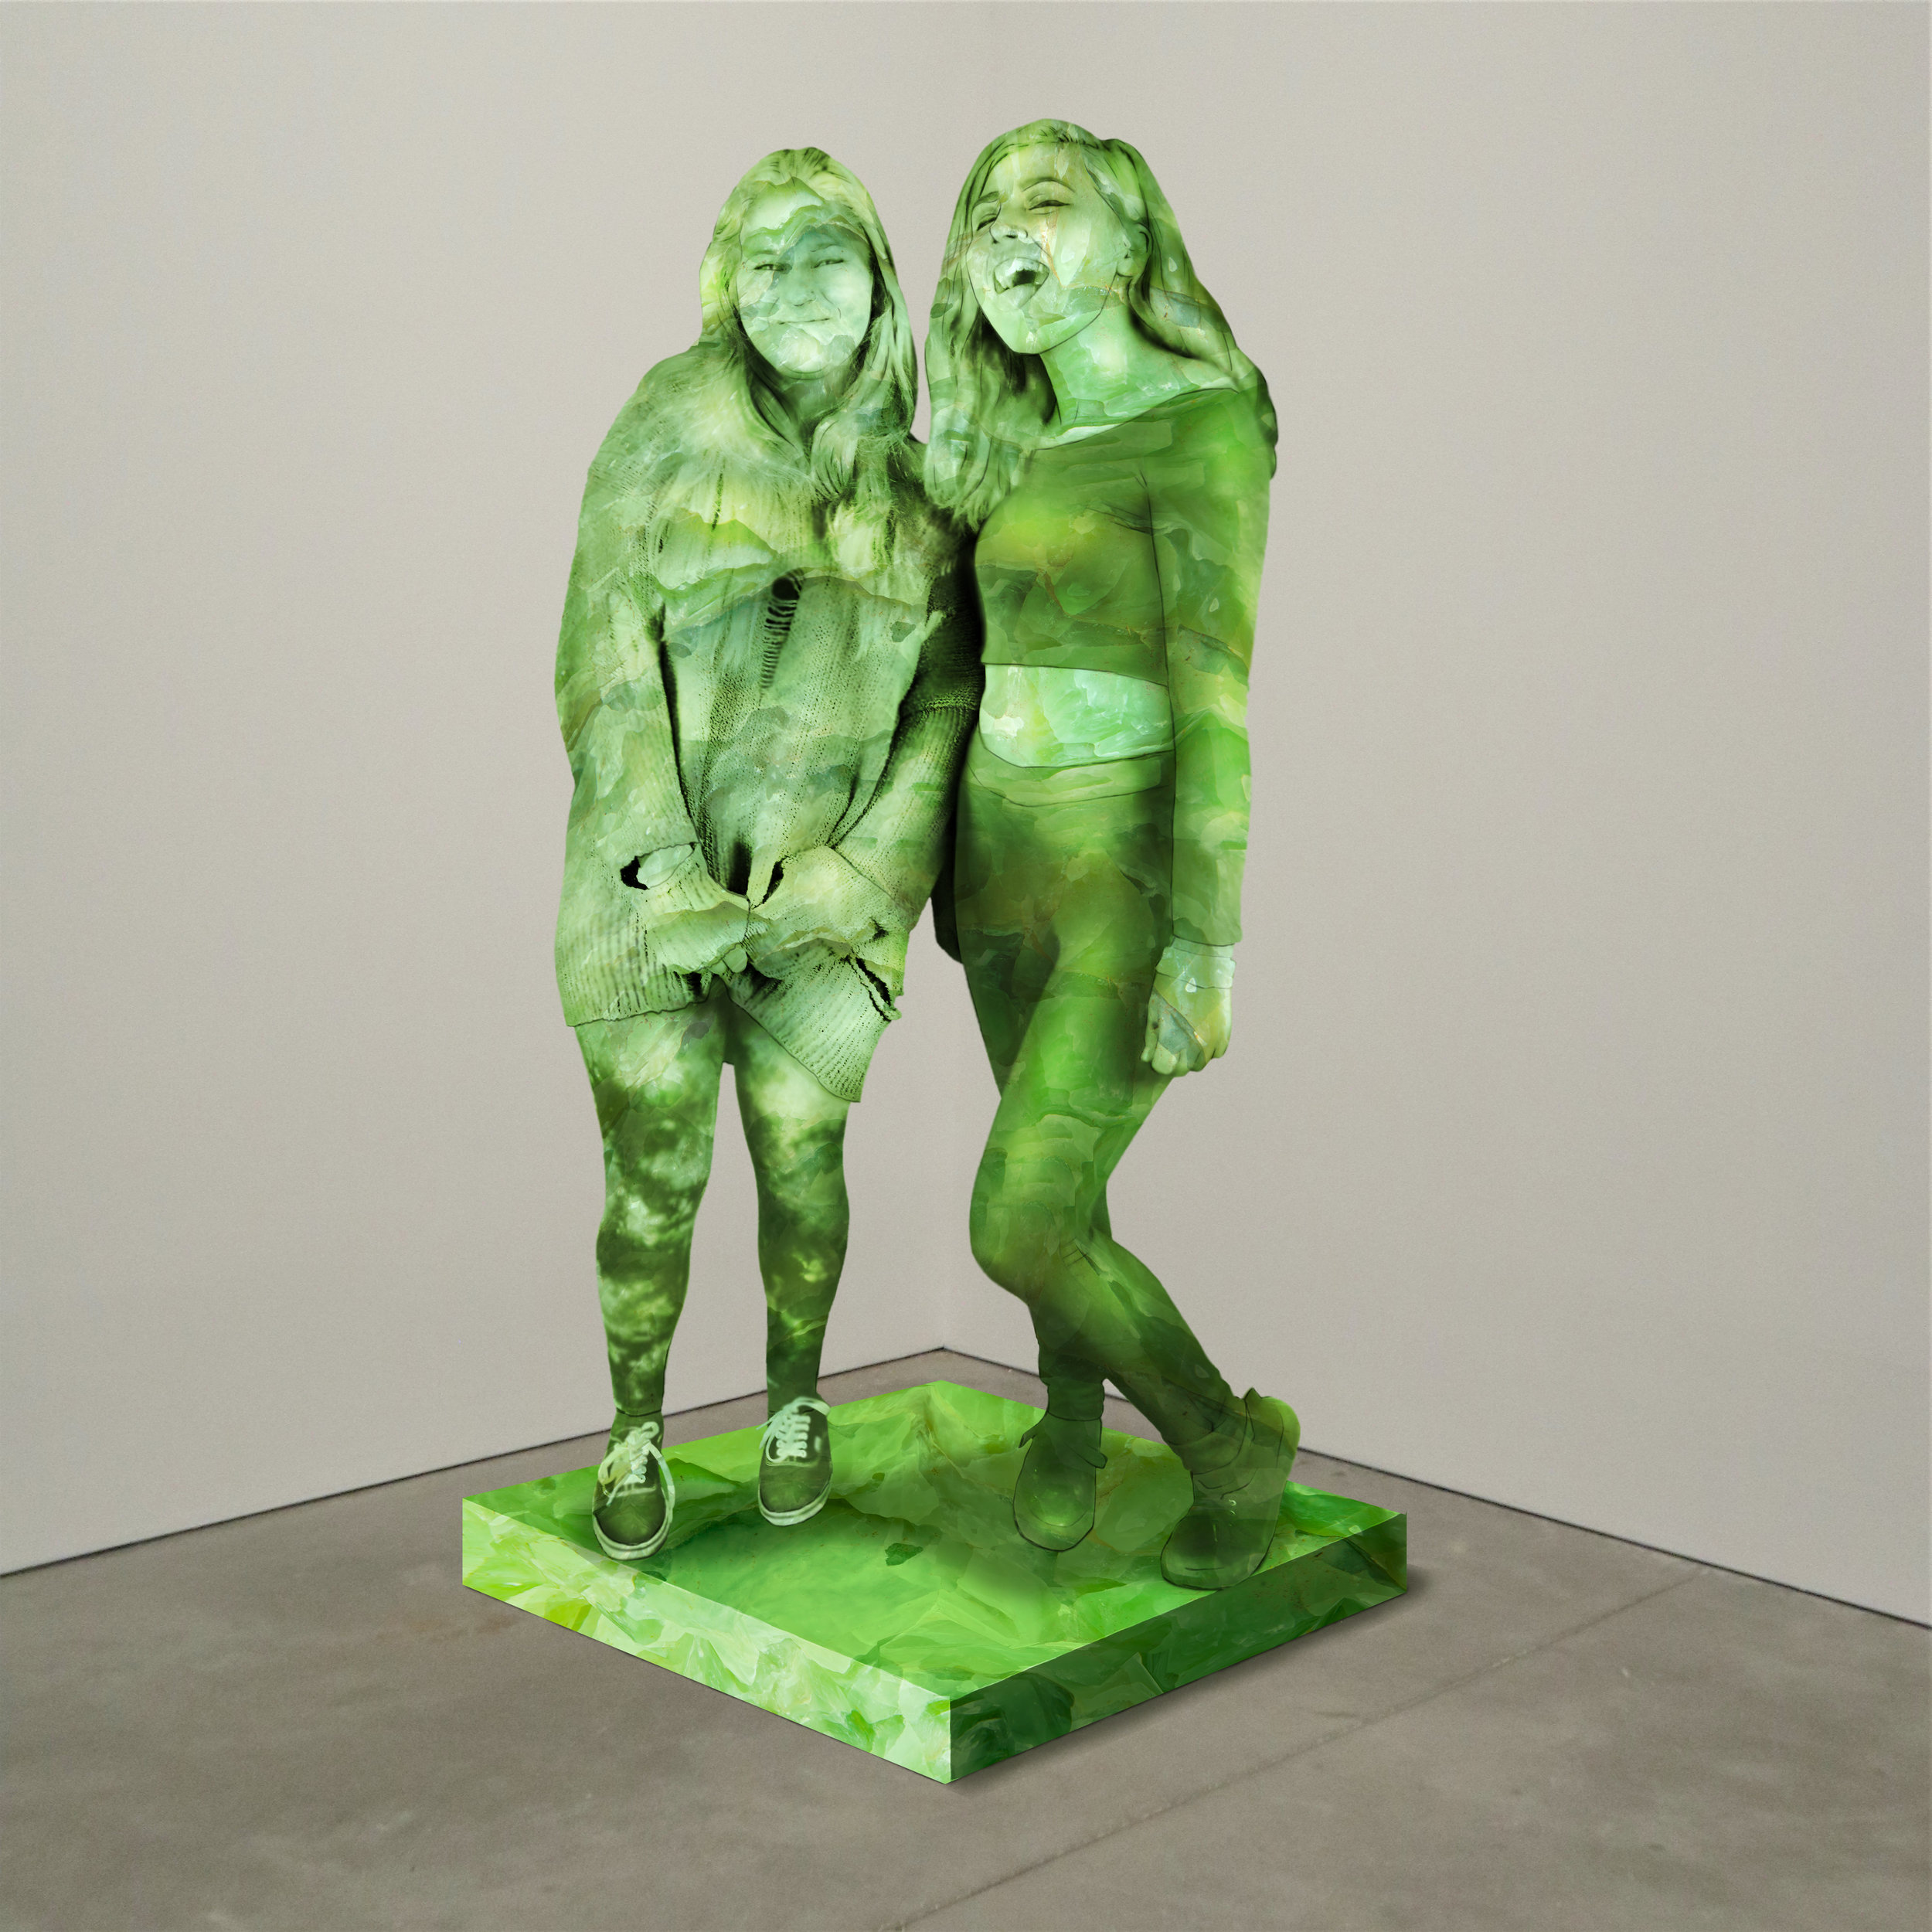 """Untitled No. 1"" jade, Institute of Contemporary Art, Boston   2018  JPG  During an installation at the Institute of Contemporary Art in Boston, viewers were invited to imagine themselves as statues in the ICA's permanent collection. Participants were photographed posing as a statue they felt represented themselves, created a name for their fictional statue, and selected a stone from which their statue would be made. Professional and amateur digital artists were commissioned to create renderings of the statues, which were superimposed on photos of the ICA's permanent collection gallery space."